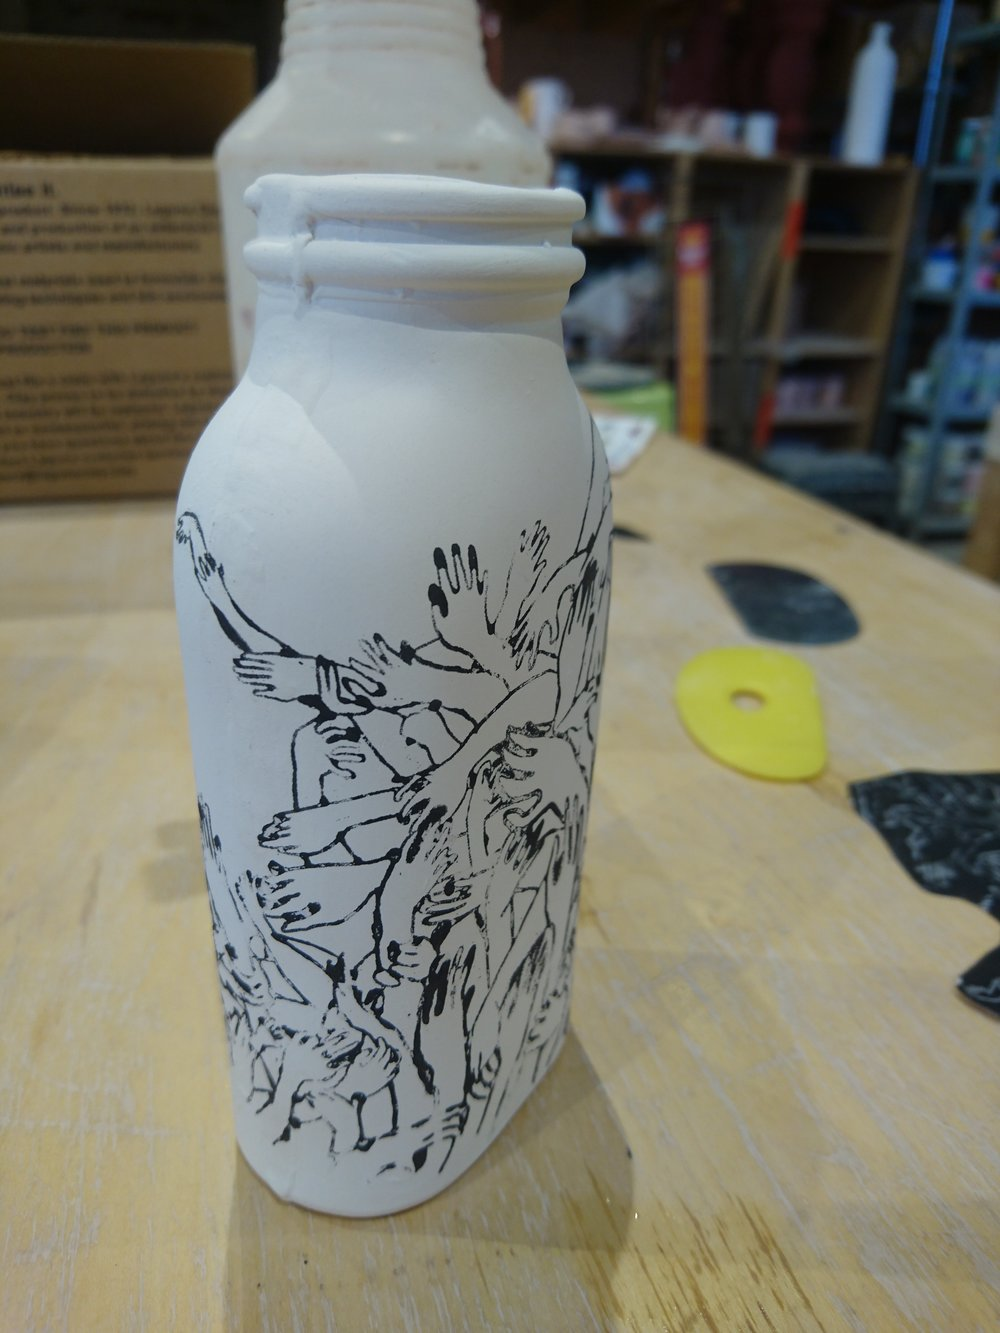 I used a photo transfer technique to make this little bottle. My other one had hand painted designs on it.